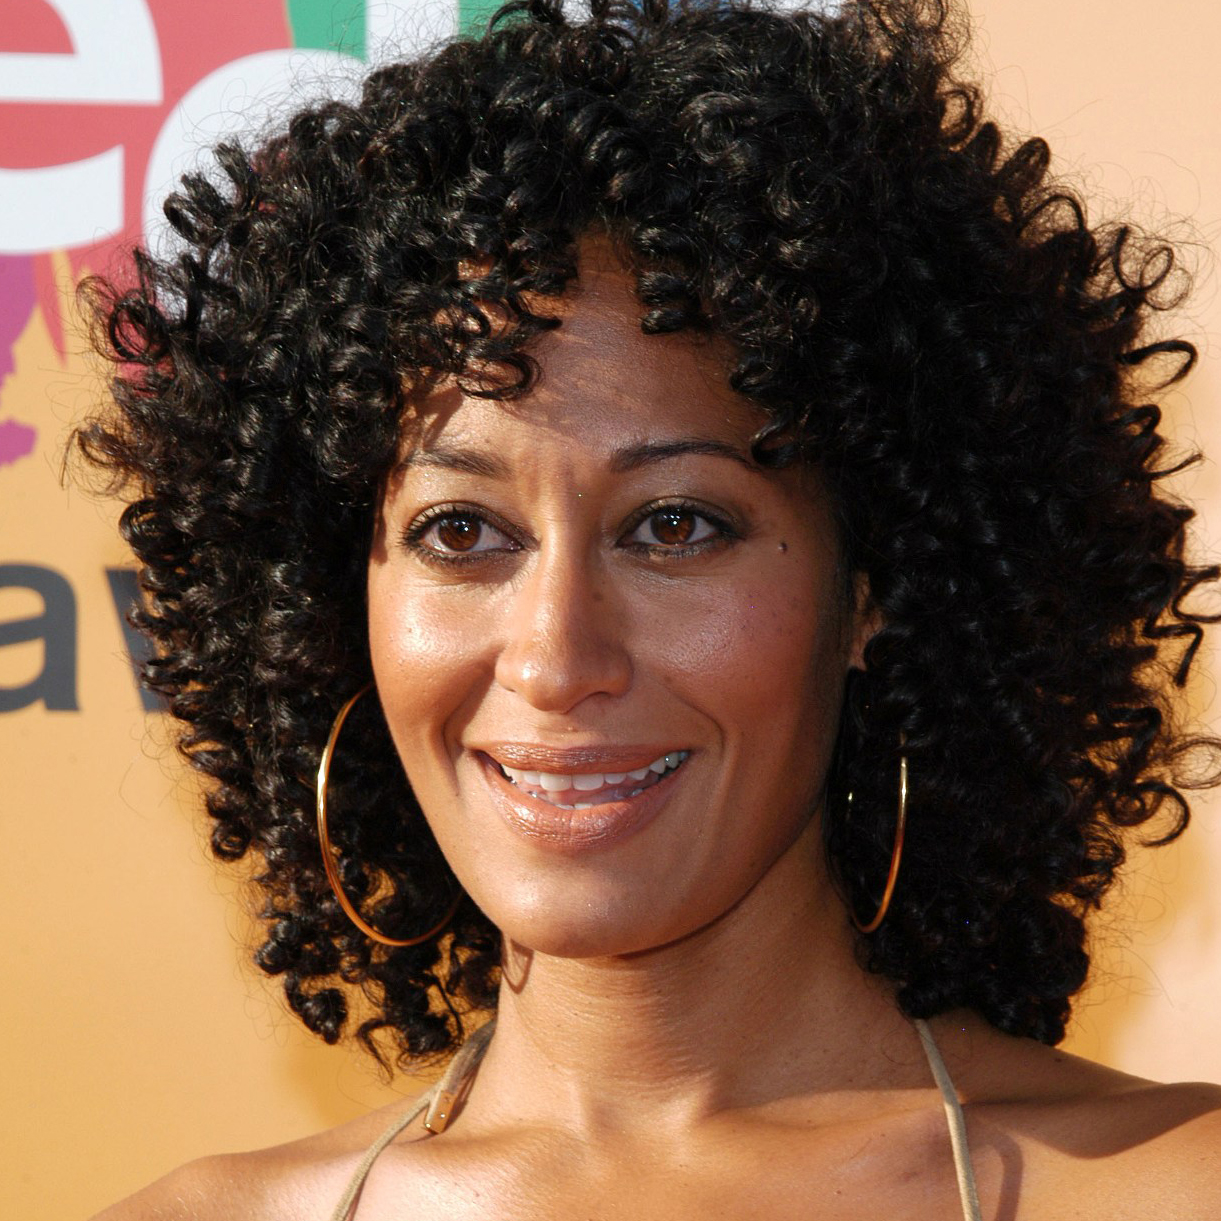 SNAPPED: Tracee Ellis Ross Gets Sparkly